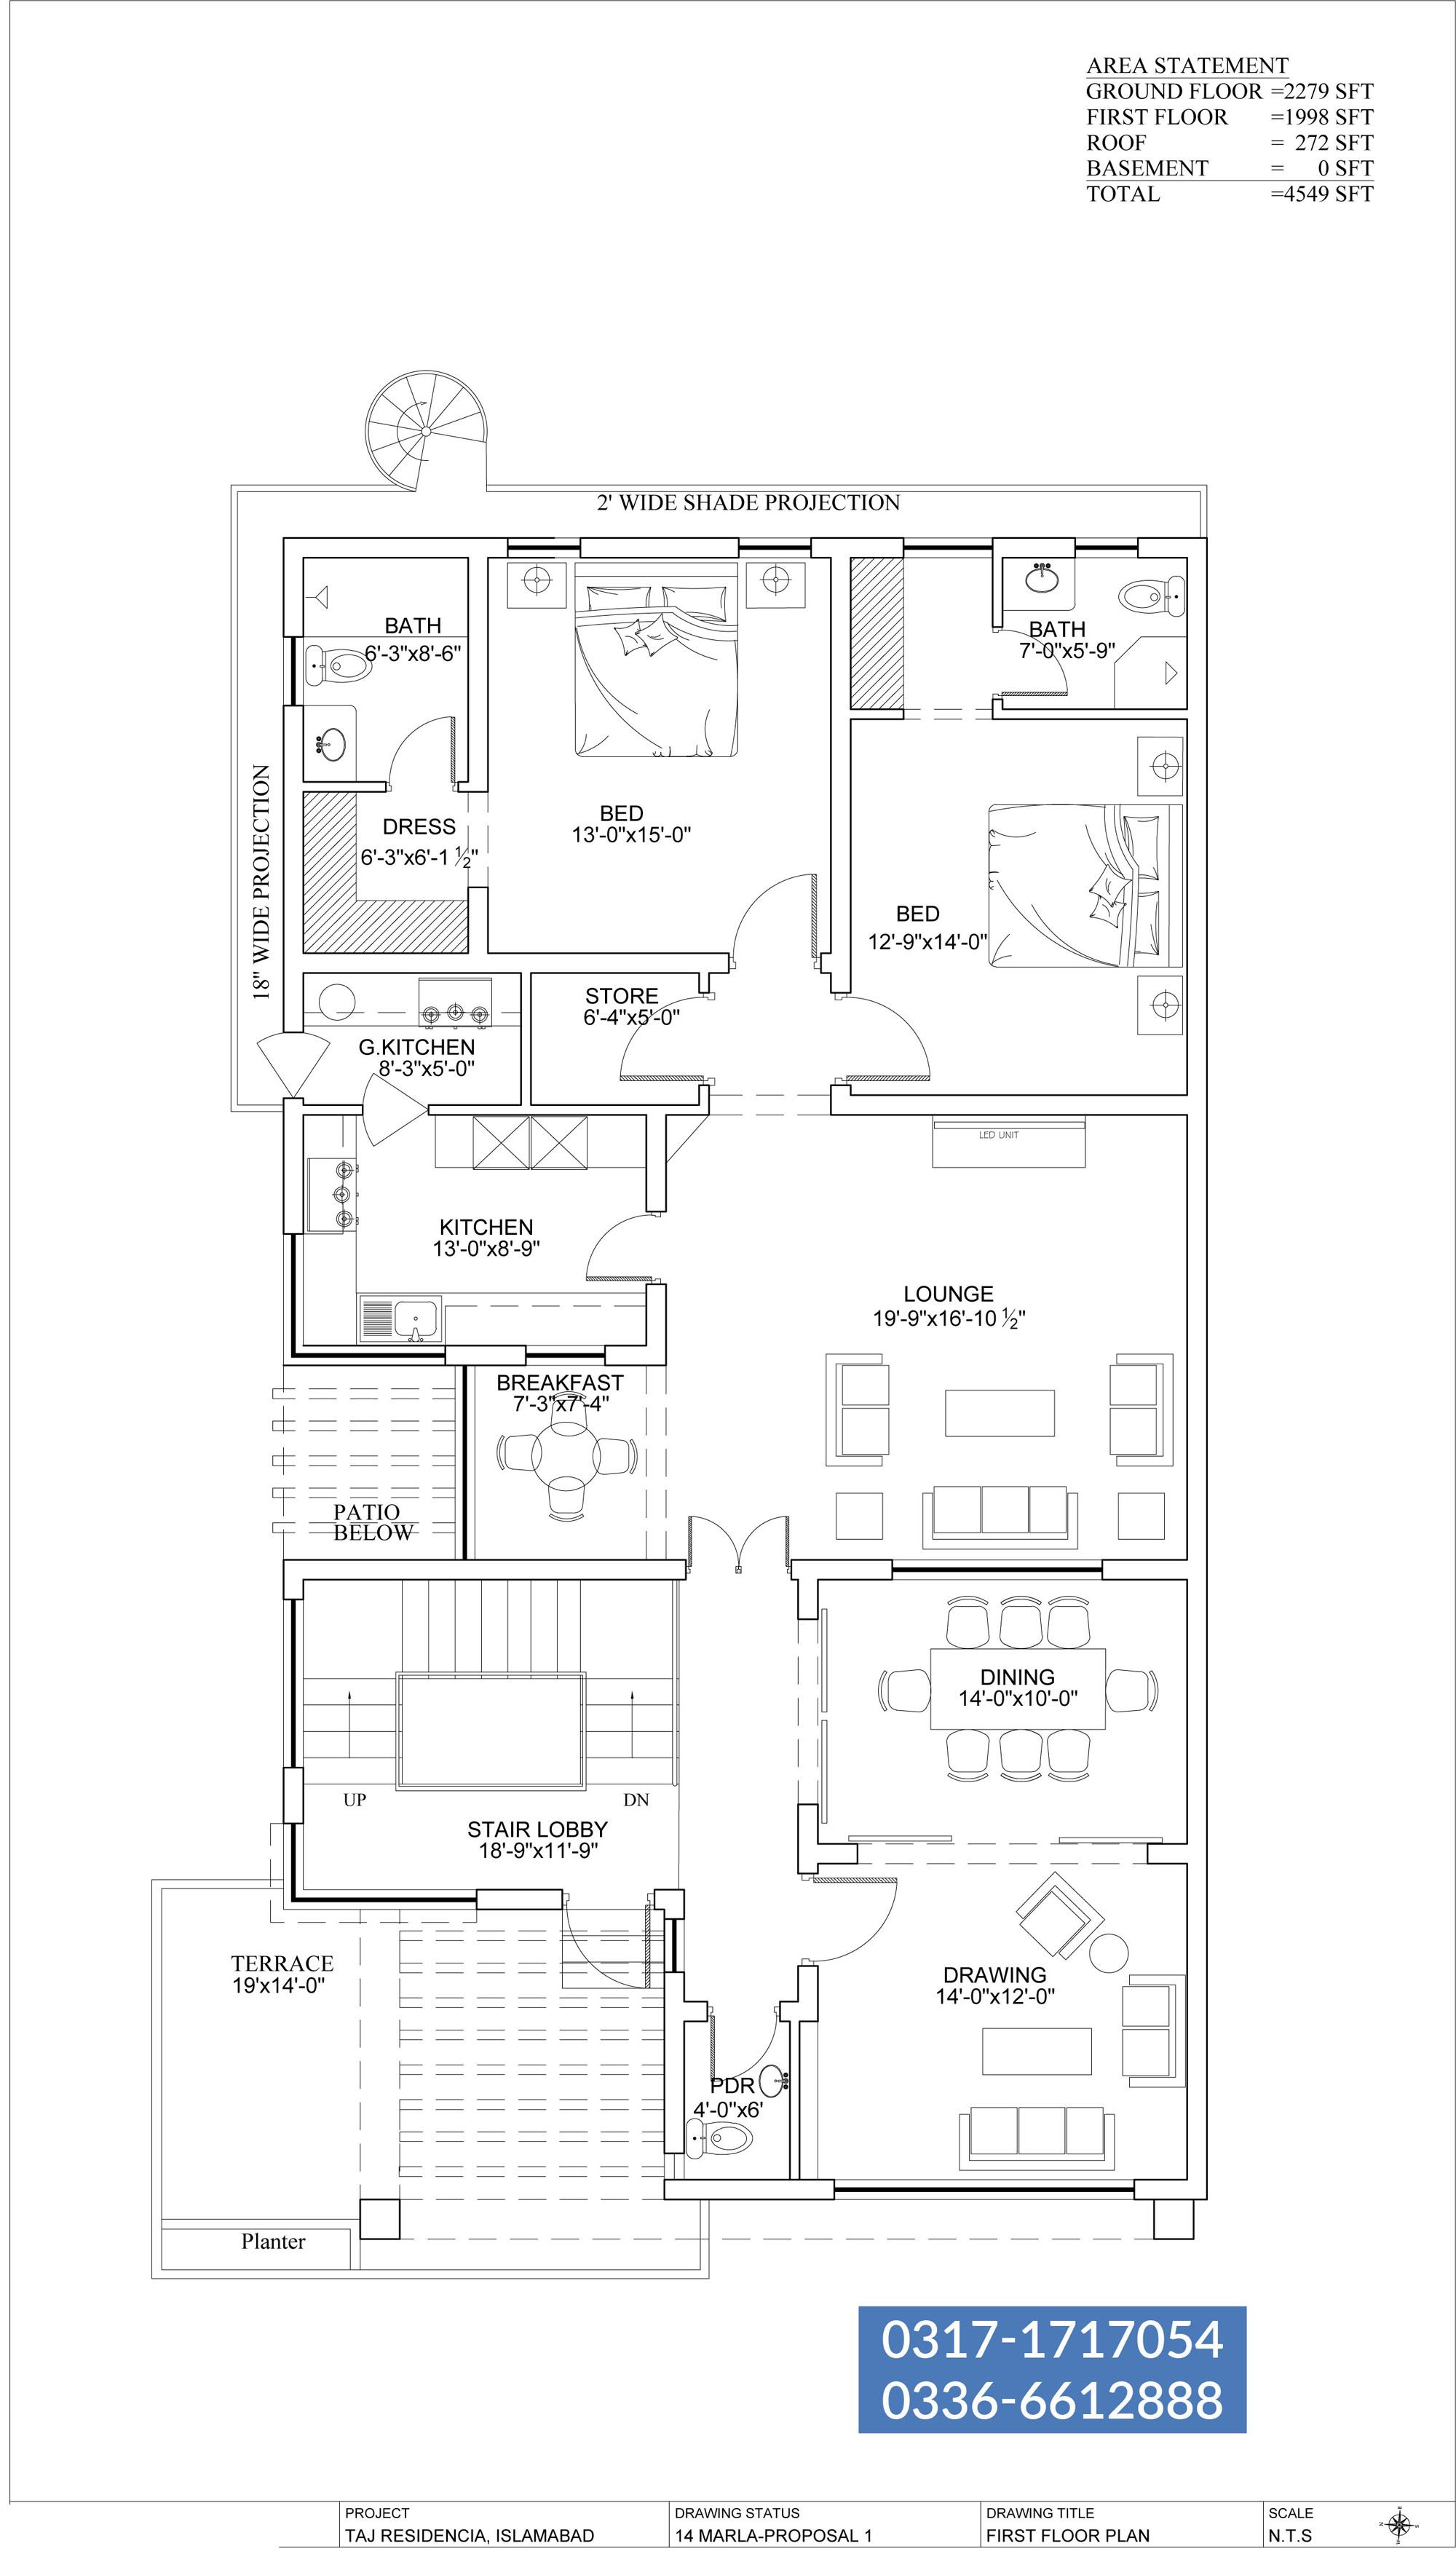 Pin By Ssdreamcatcher On For Work Small House Design Plans Small House Design Home Design Plans